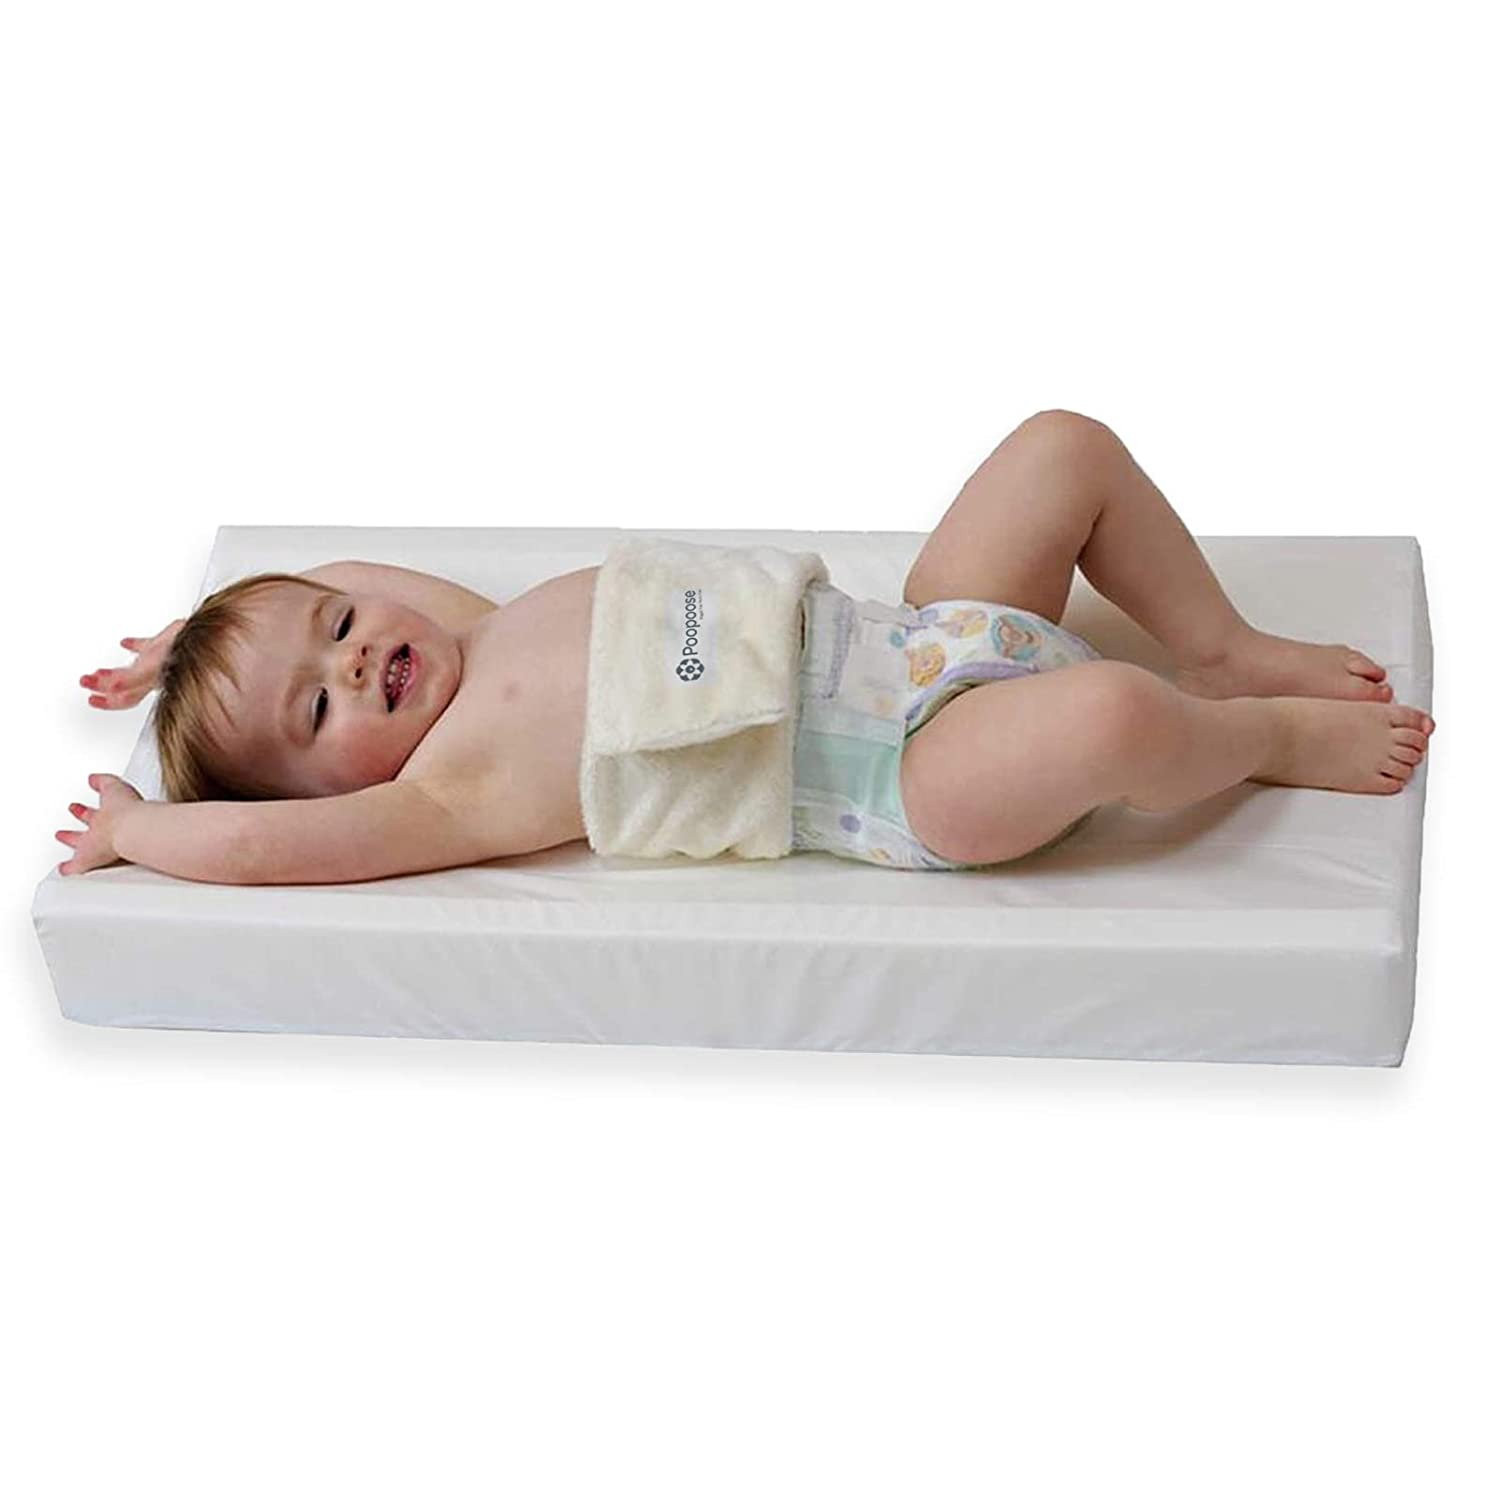 PooPoose Baby Changing Pad - Diaper Mat for Table, Dresser, Change Station, Soft & Secure, White